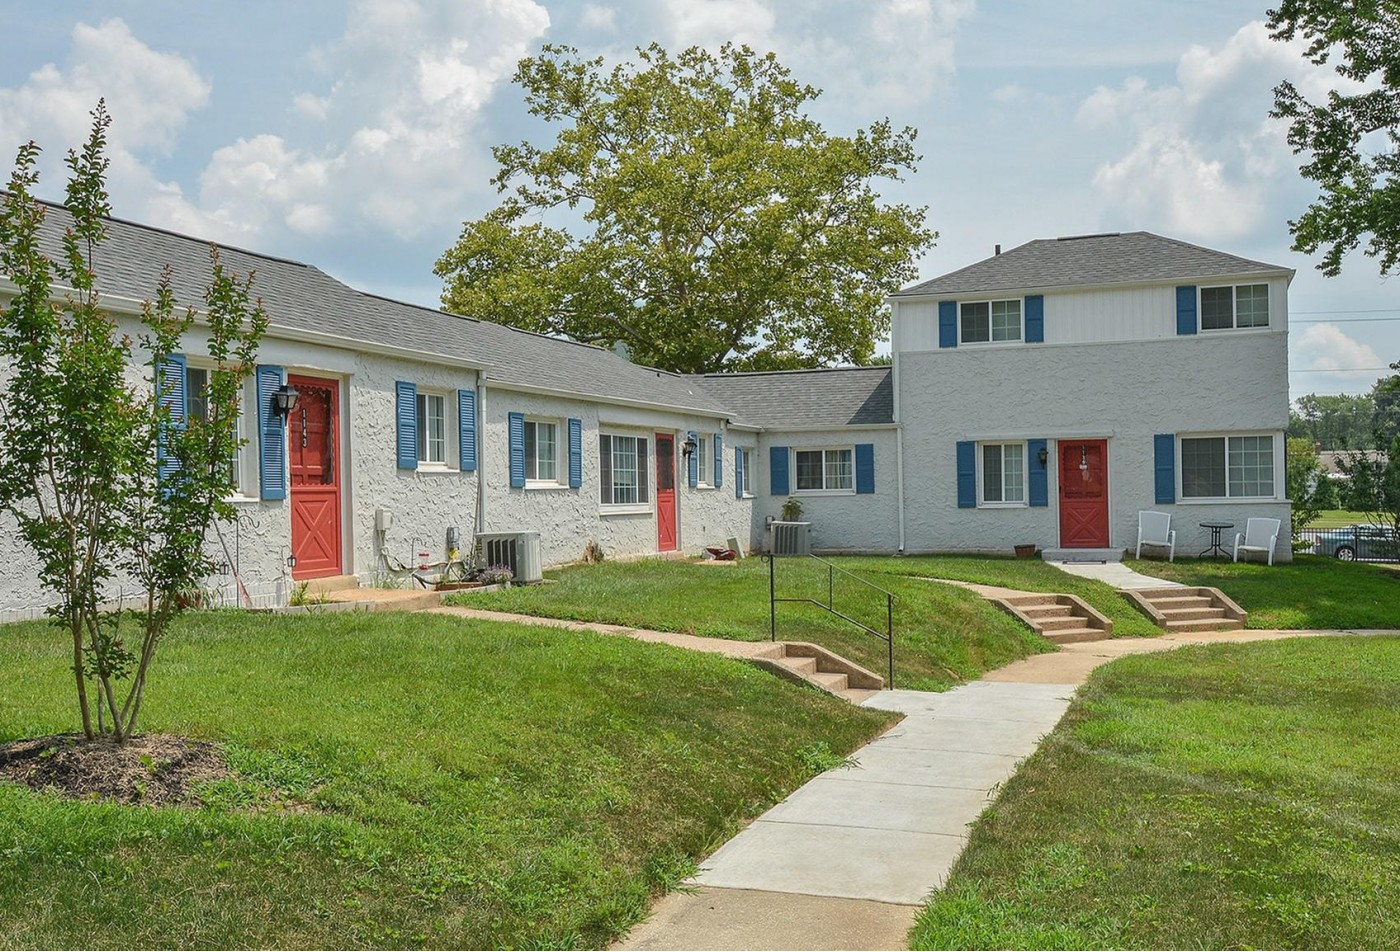 Apartments in Wilmington, DE | Greenville on 141 Apartments & Townhomes